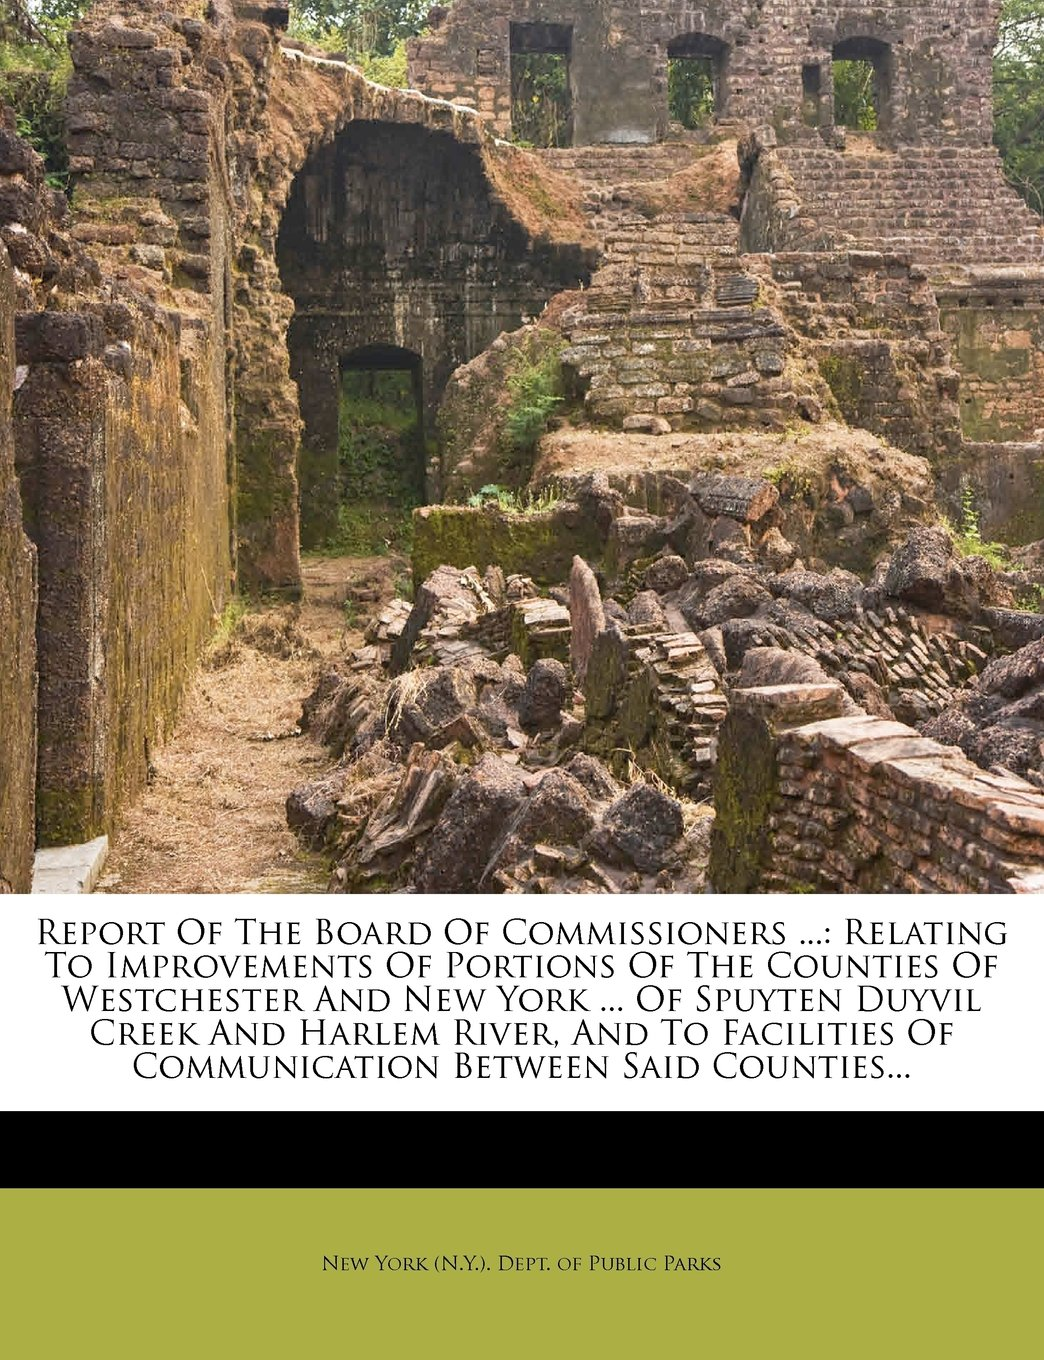 Report Of The Board Of Commissioners ...: Relating To Improvements Of Portions Of The Counties Of Westchester And New York ... Of Spuyten Duyvil Creek ... Of Communication Between Said Counties... pdf